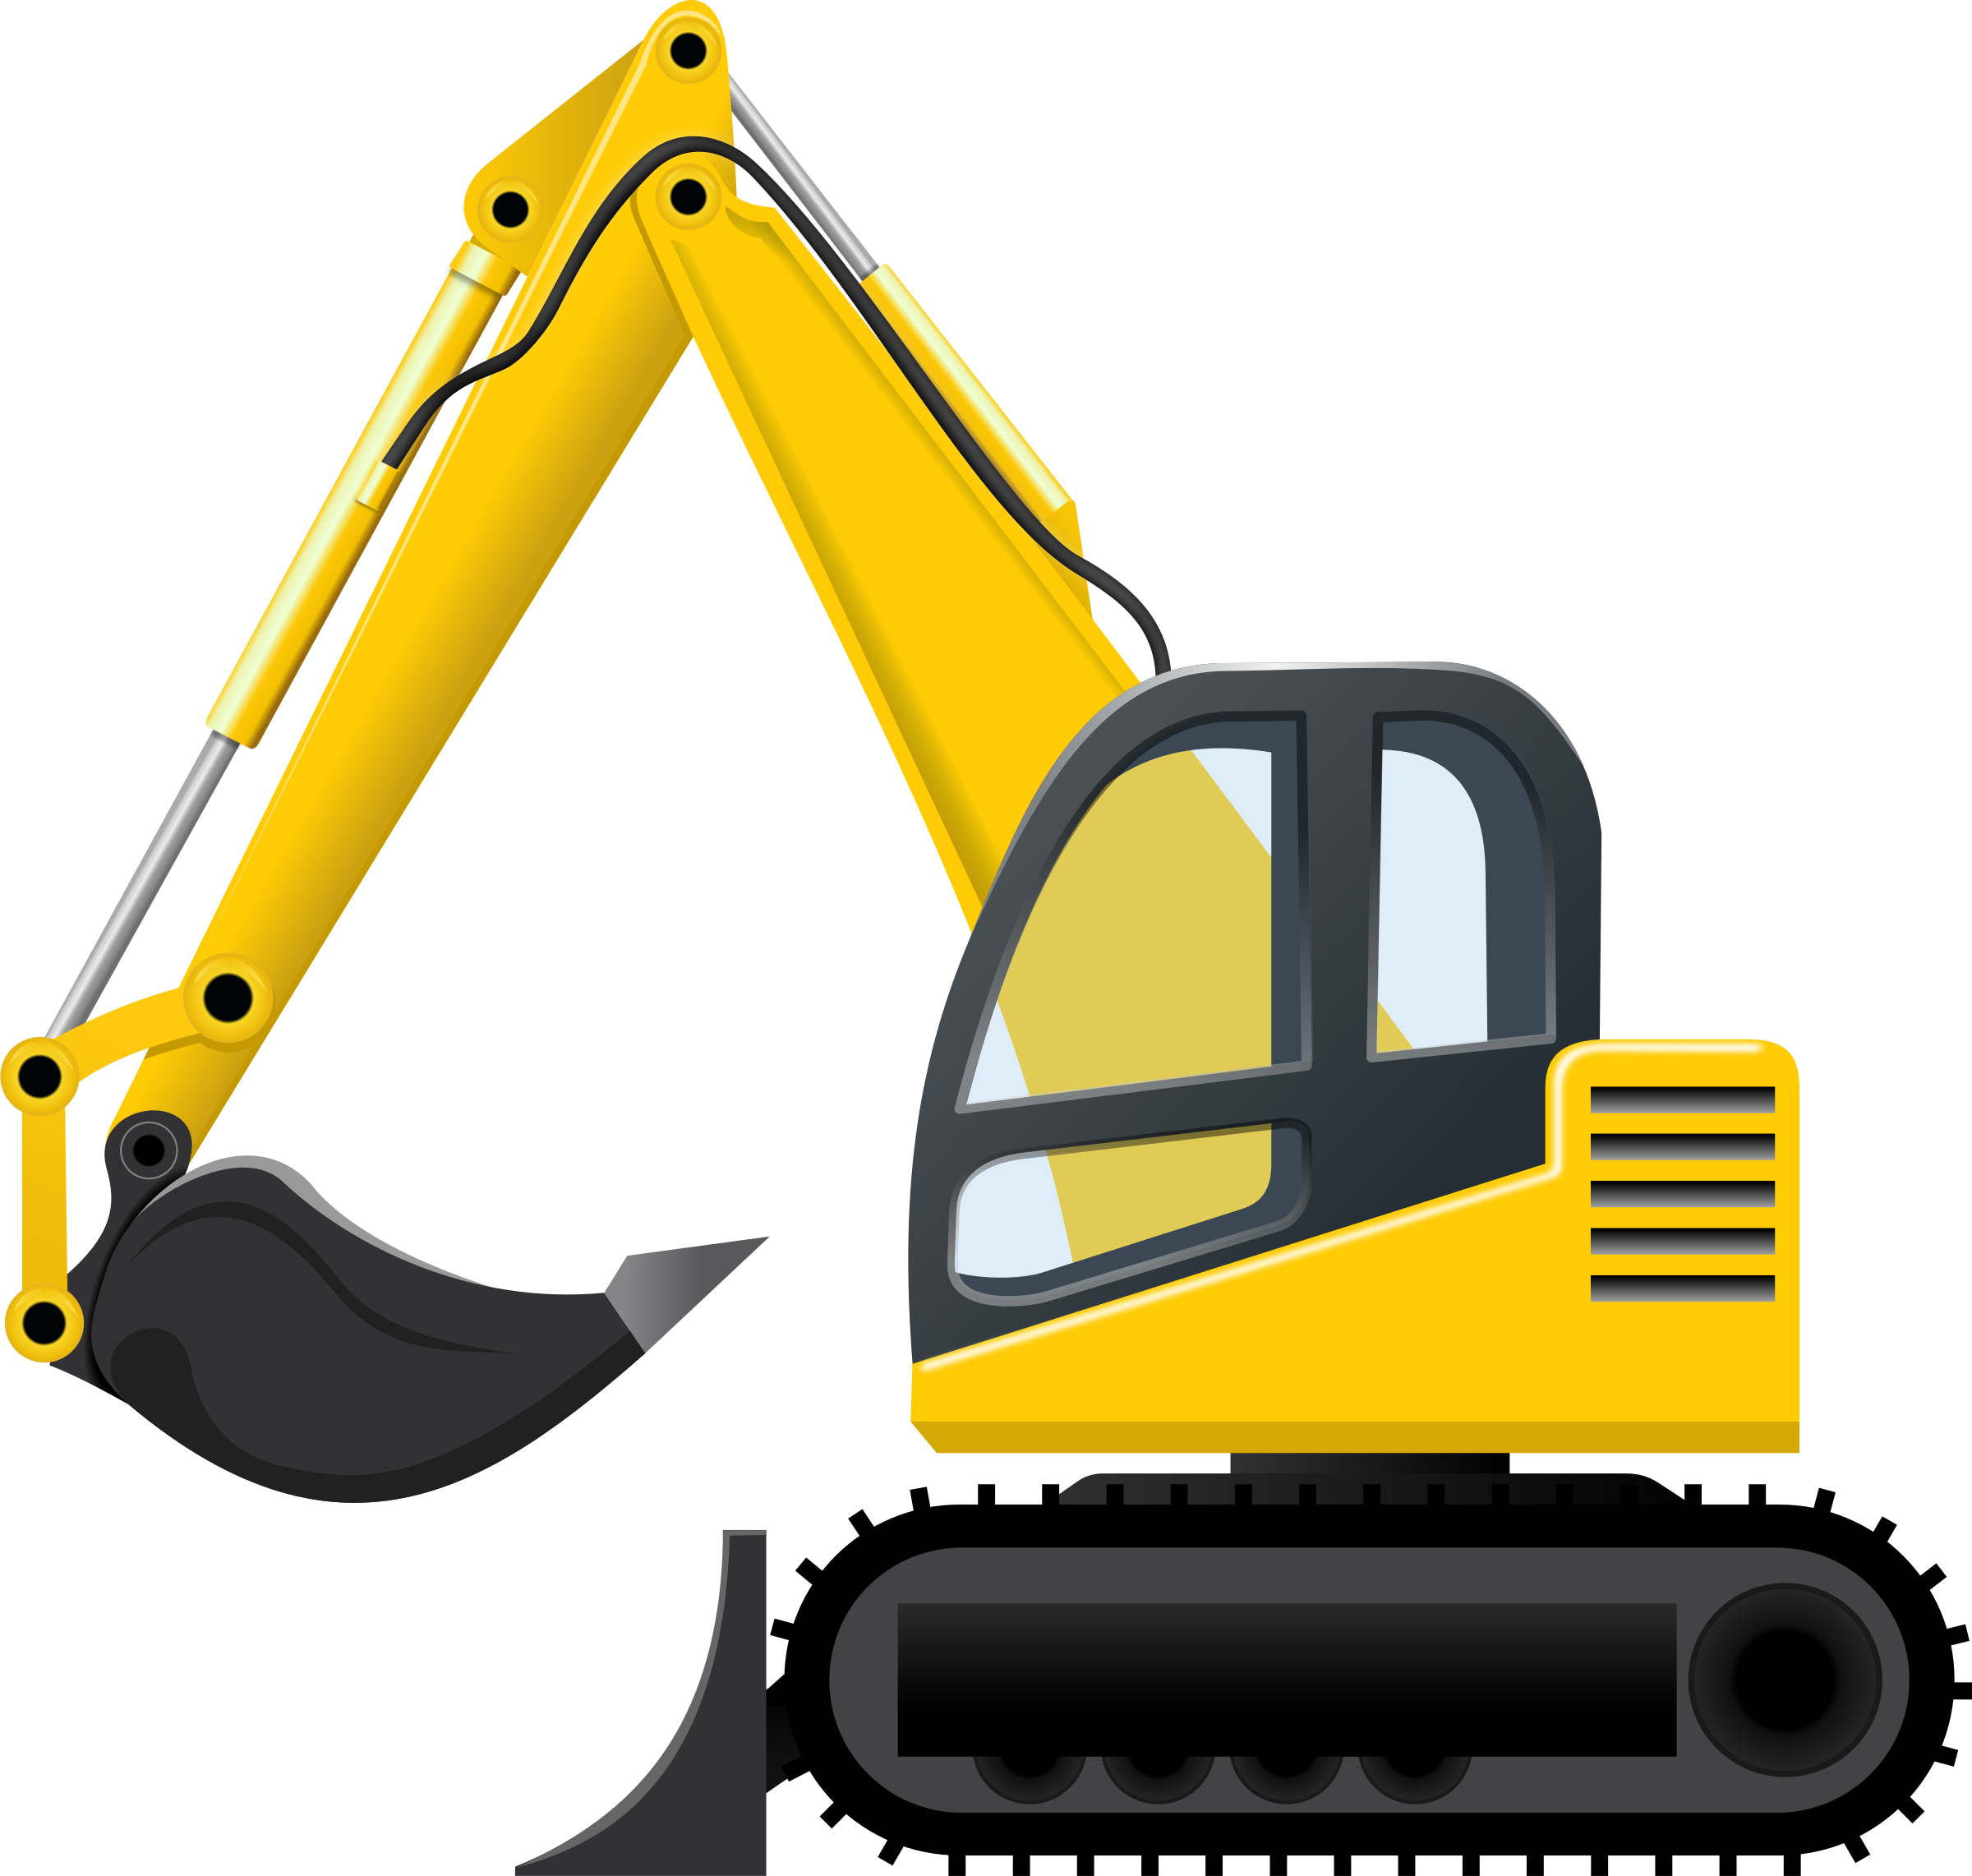 Free Construction Clipart Image.